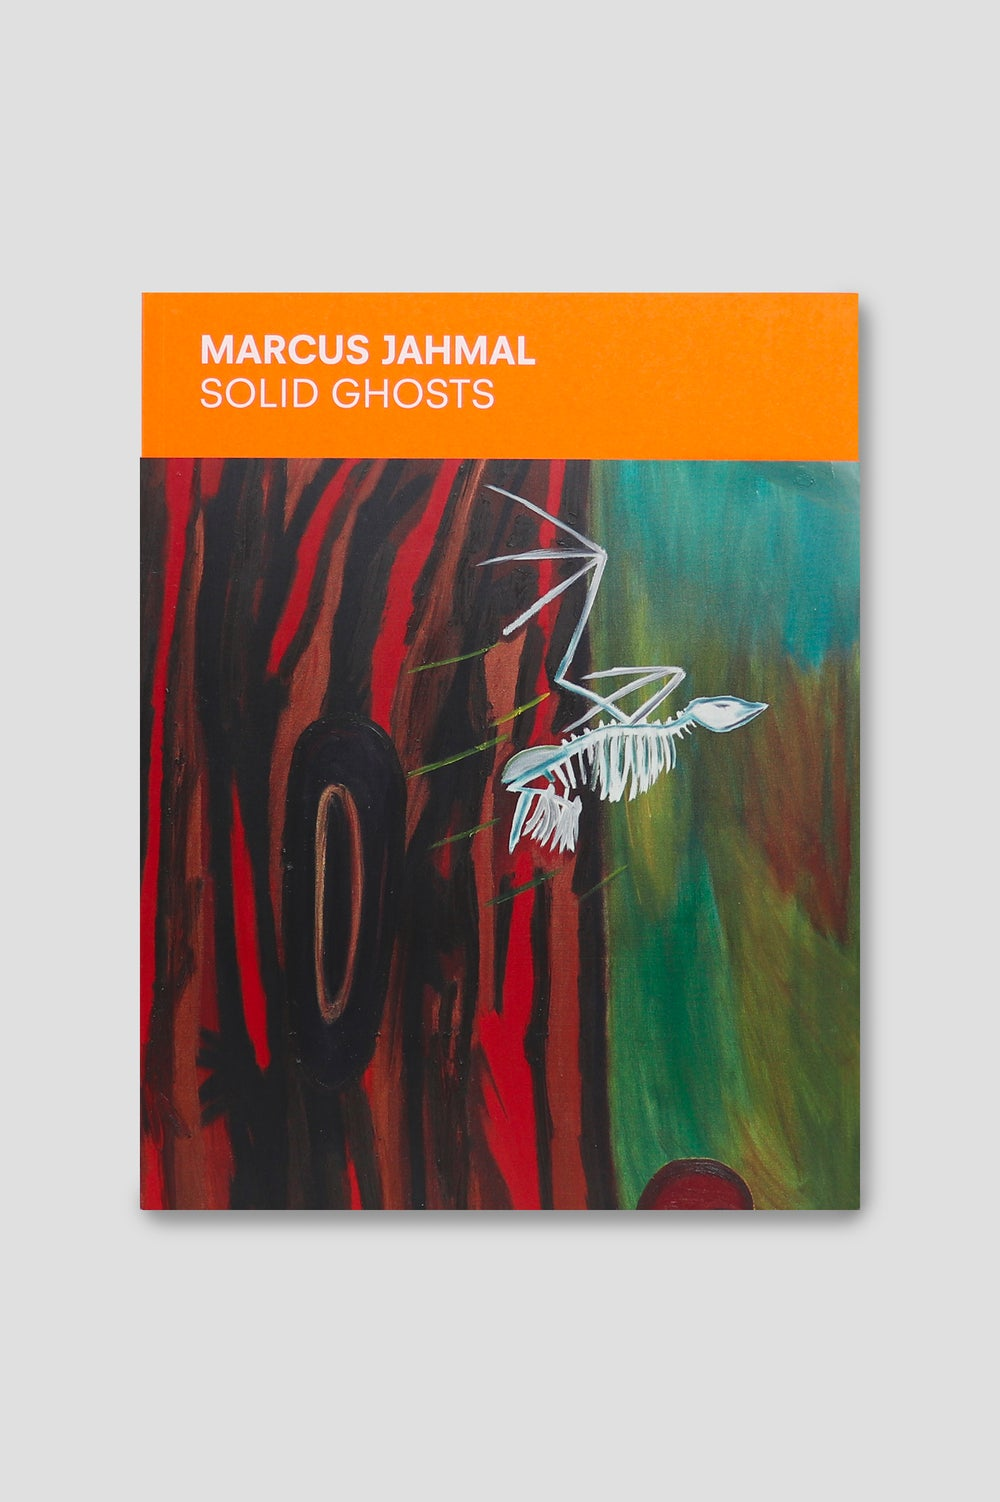 Image of Marcus Jahmal - Solid Ghosts